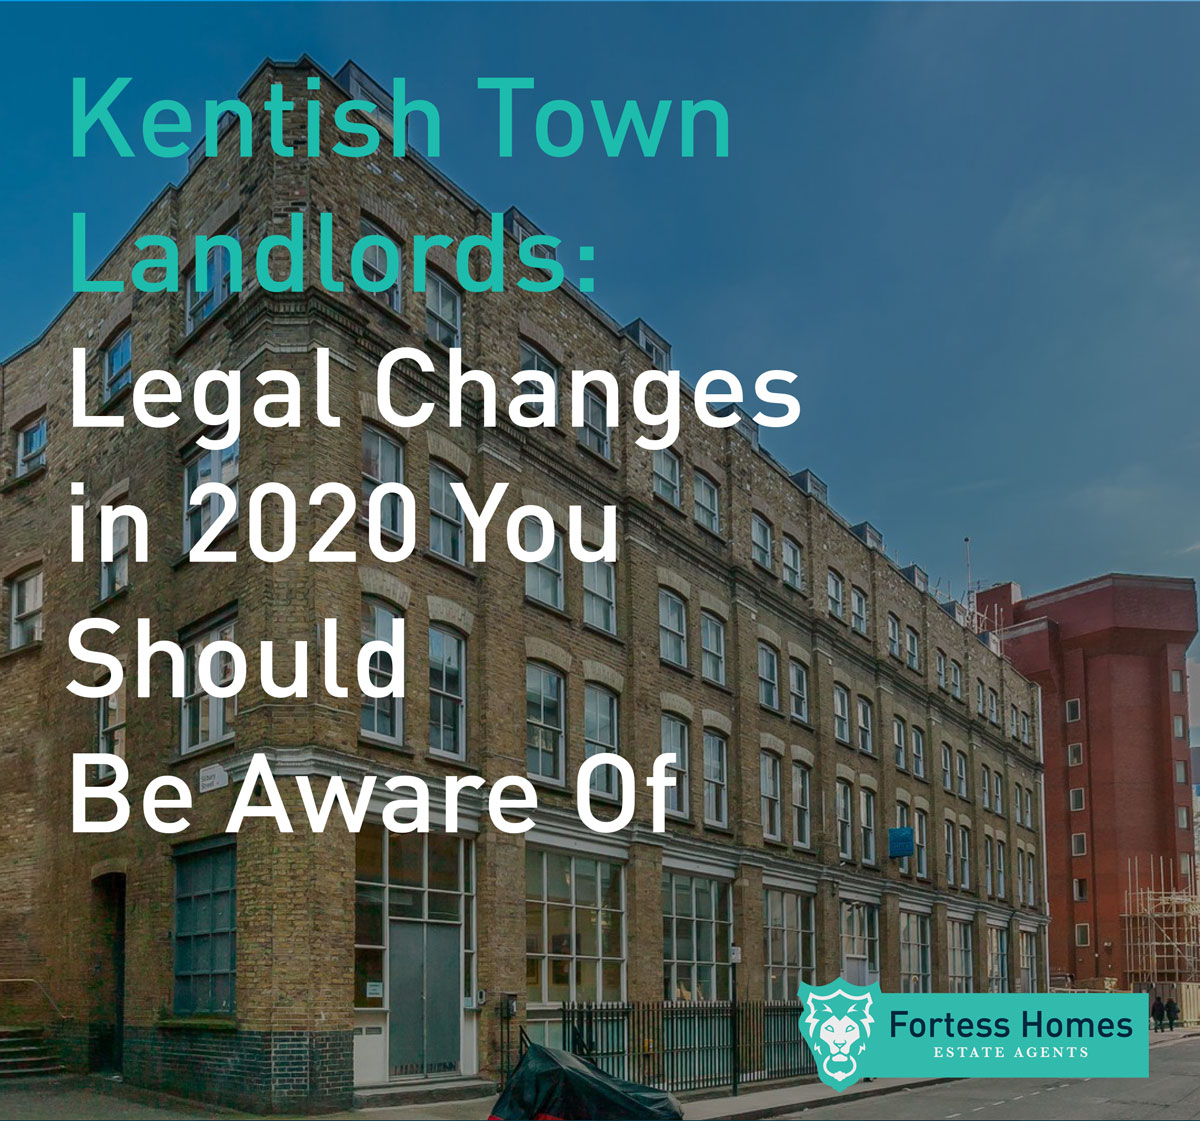 Kentish Town Landlords: Legal Changes in 2020 You Should Be Aware Of